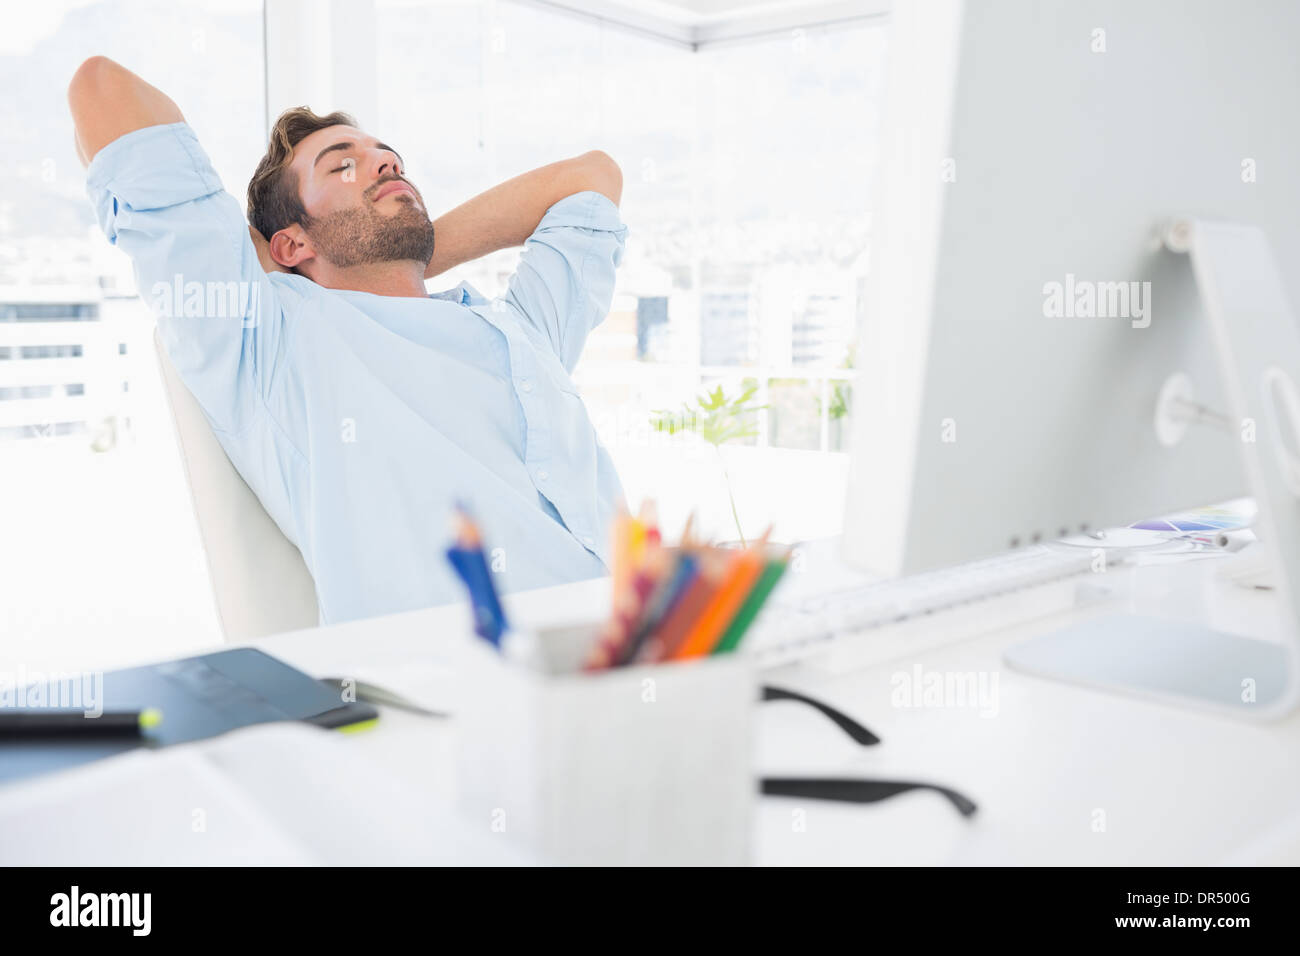 Casual man resting with hands behind head in office - Stock Image